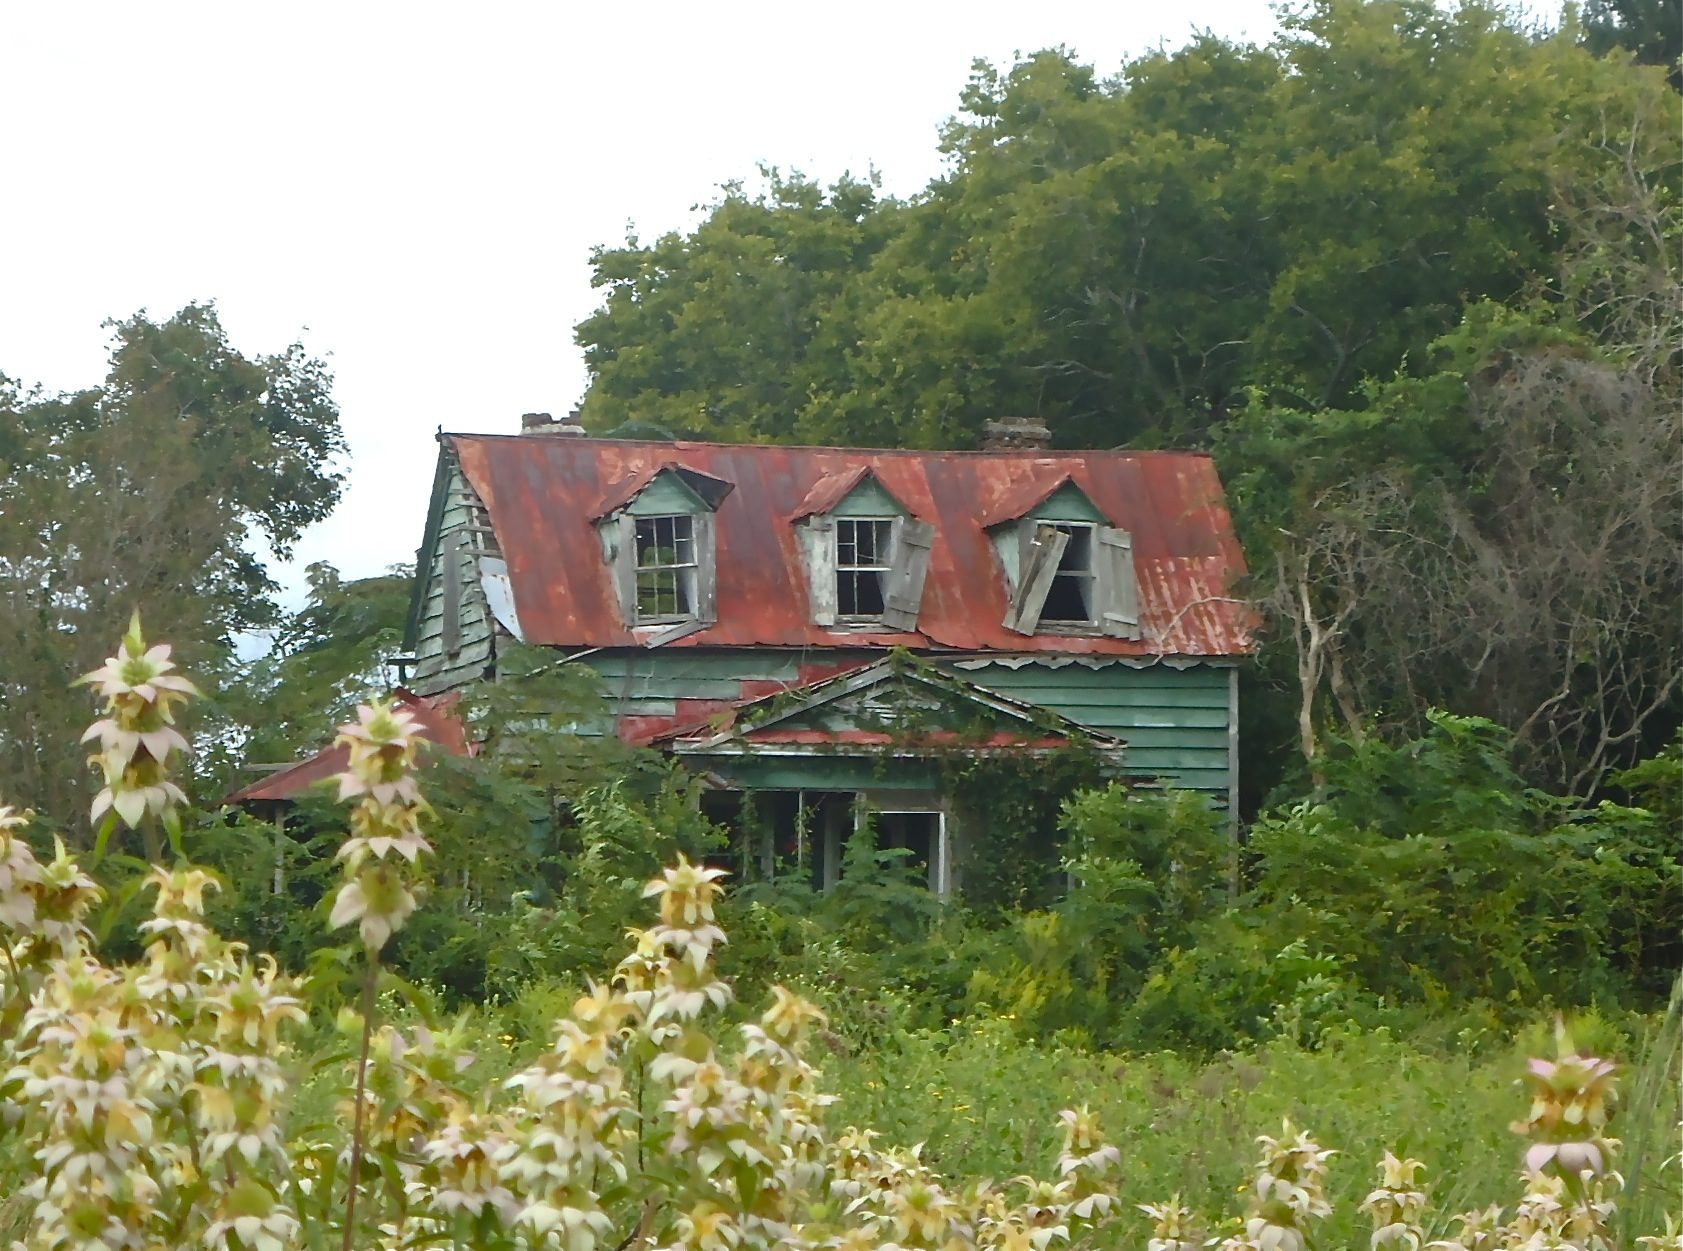 edisto island men Explore an array of edisto island, sc vacation rentals, including houses, villas & more bookable online choose from more than 1,500 properties, ideal house rentals for families, groups and couples.